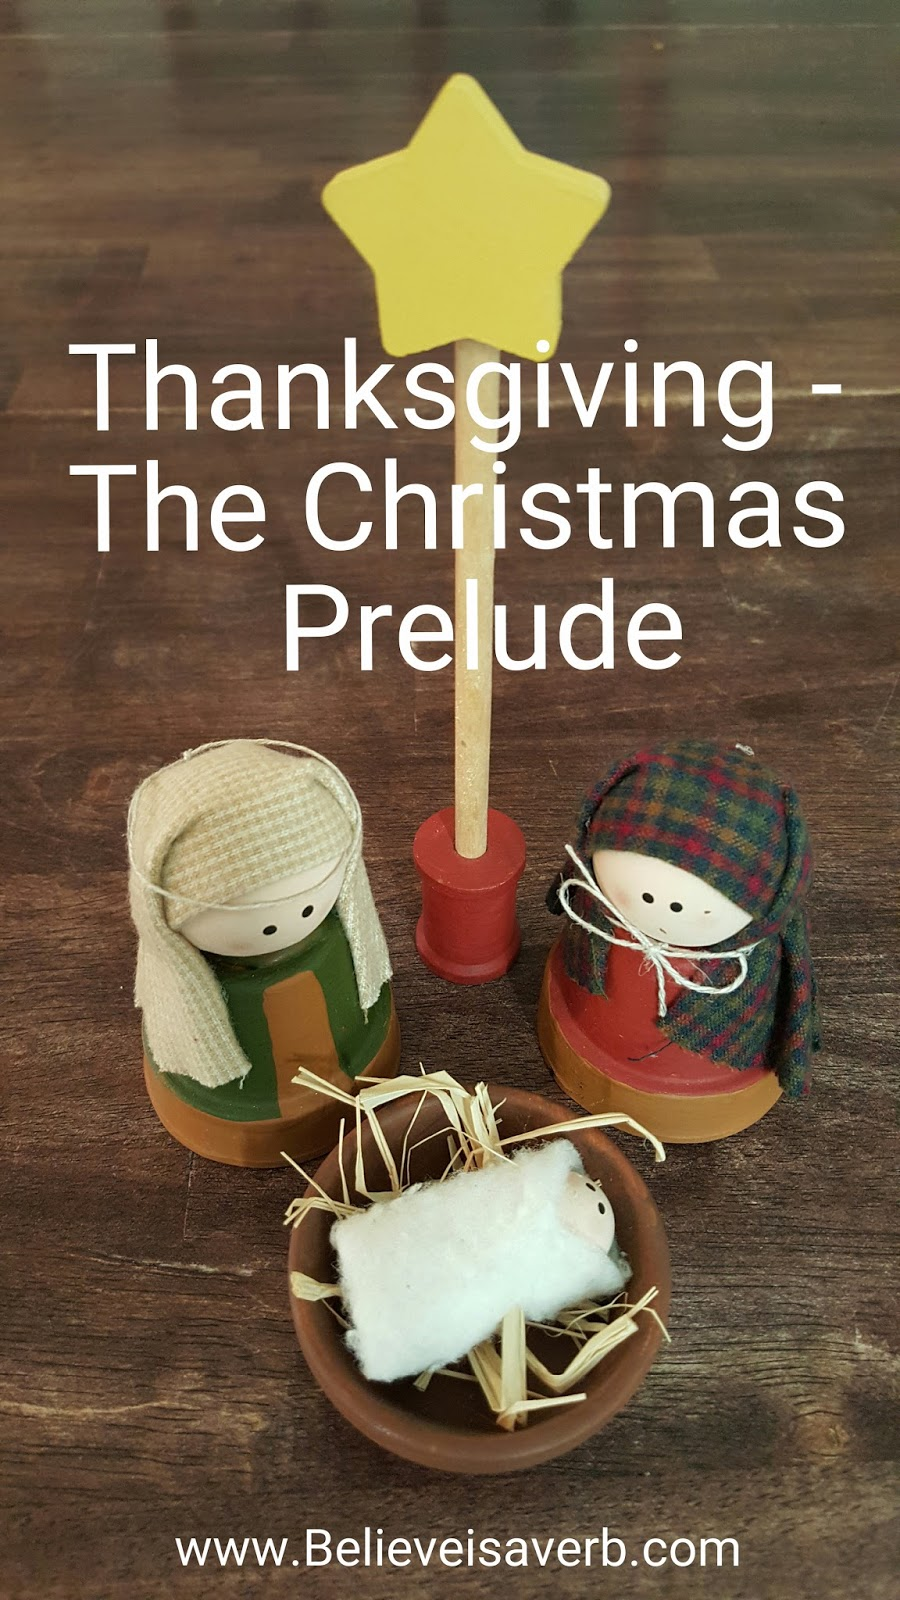 Believe is a Verb: Thanksgiving - The Christmas Prelude